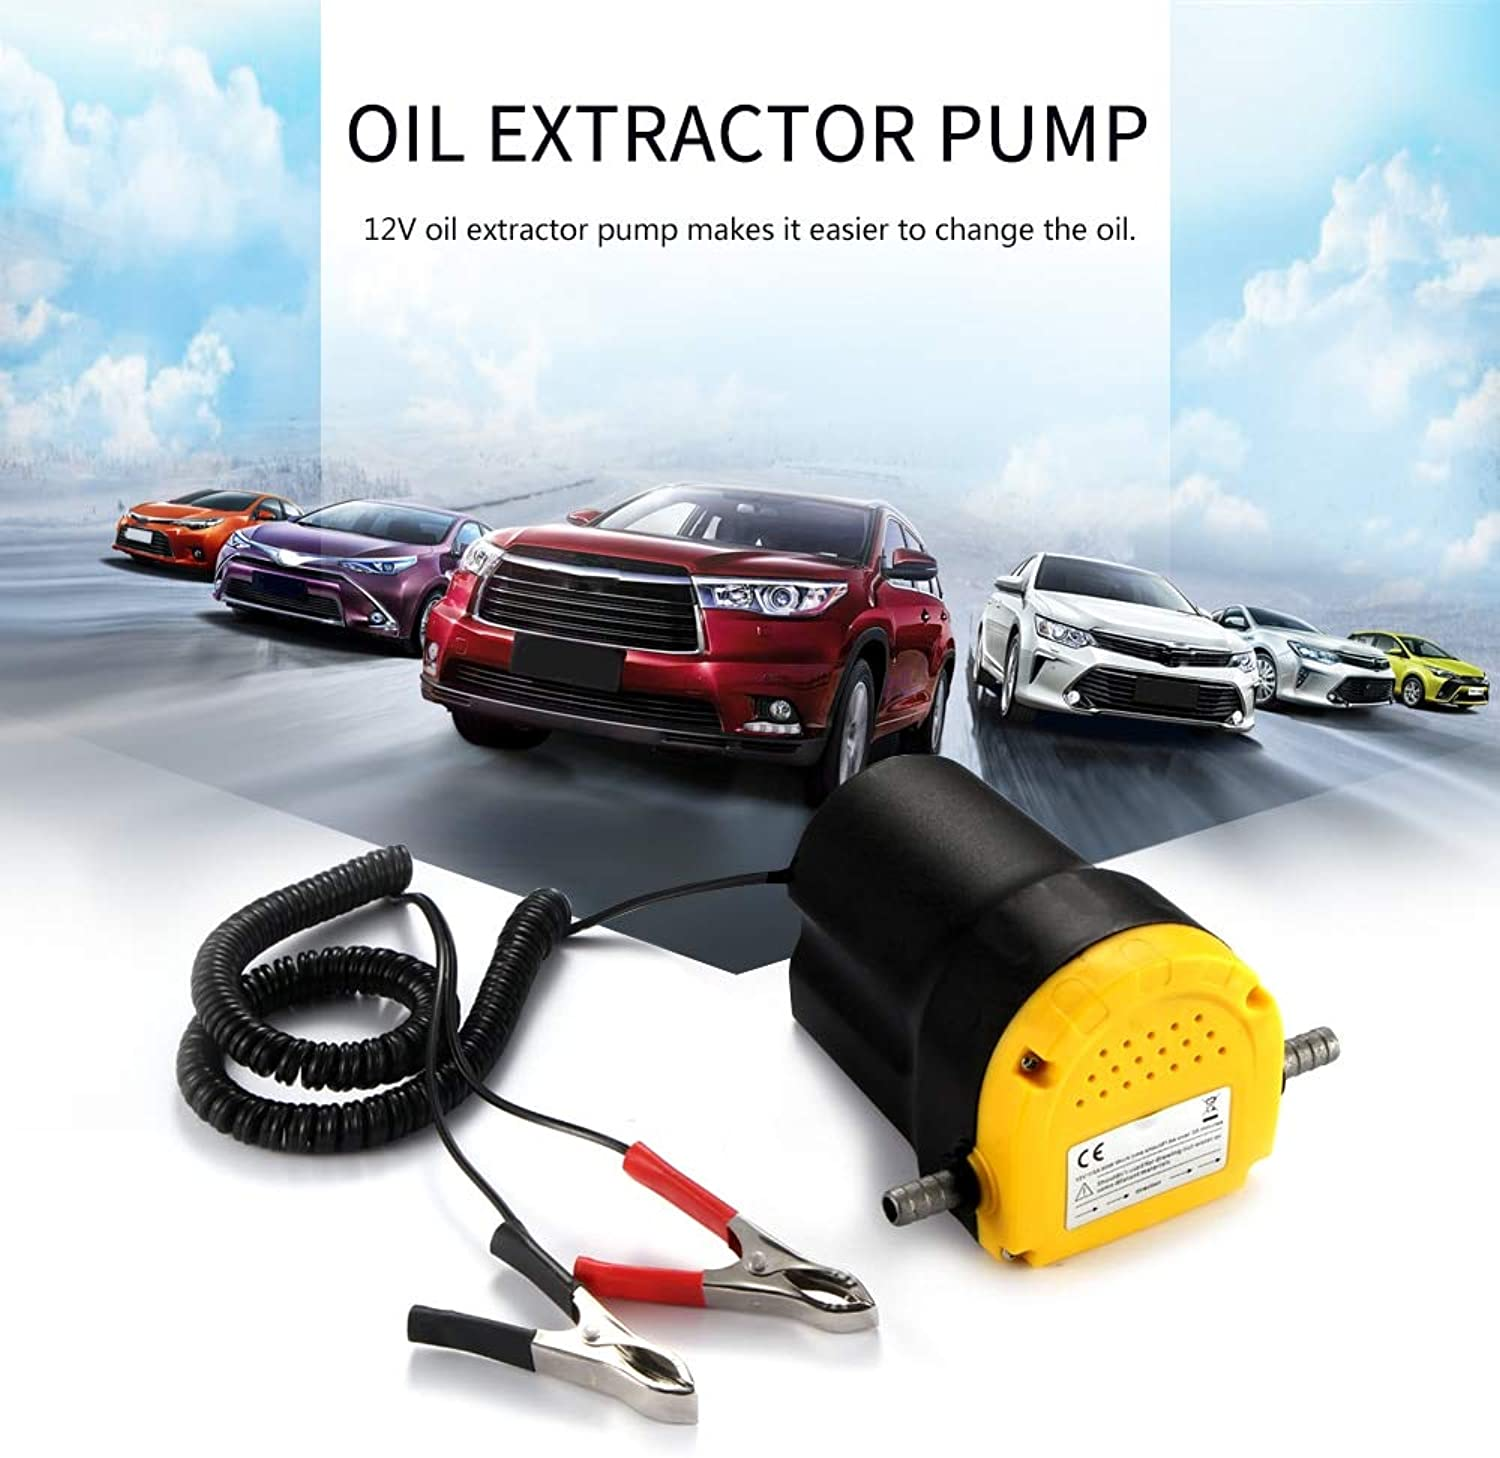 AoforzBrand Professional Electric Oil Pump Scavenge Suction Transfer Change Pump 12V Motor Oil Diesel Extractor